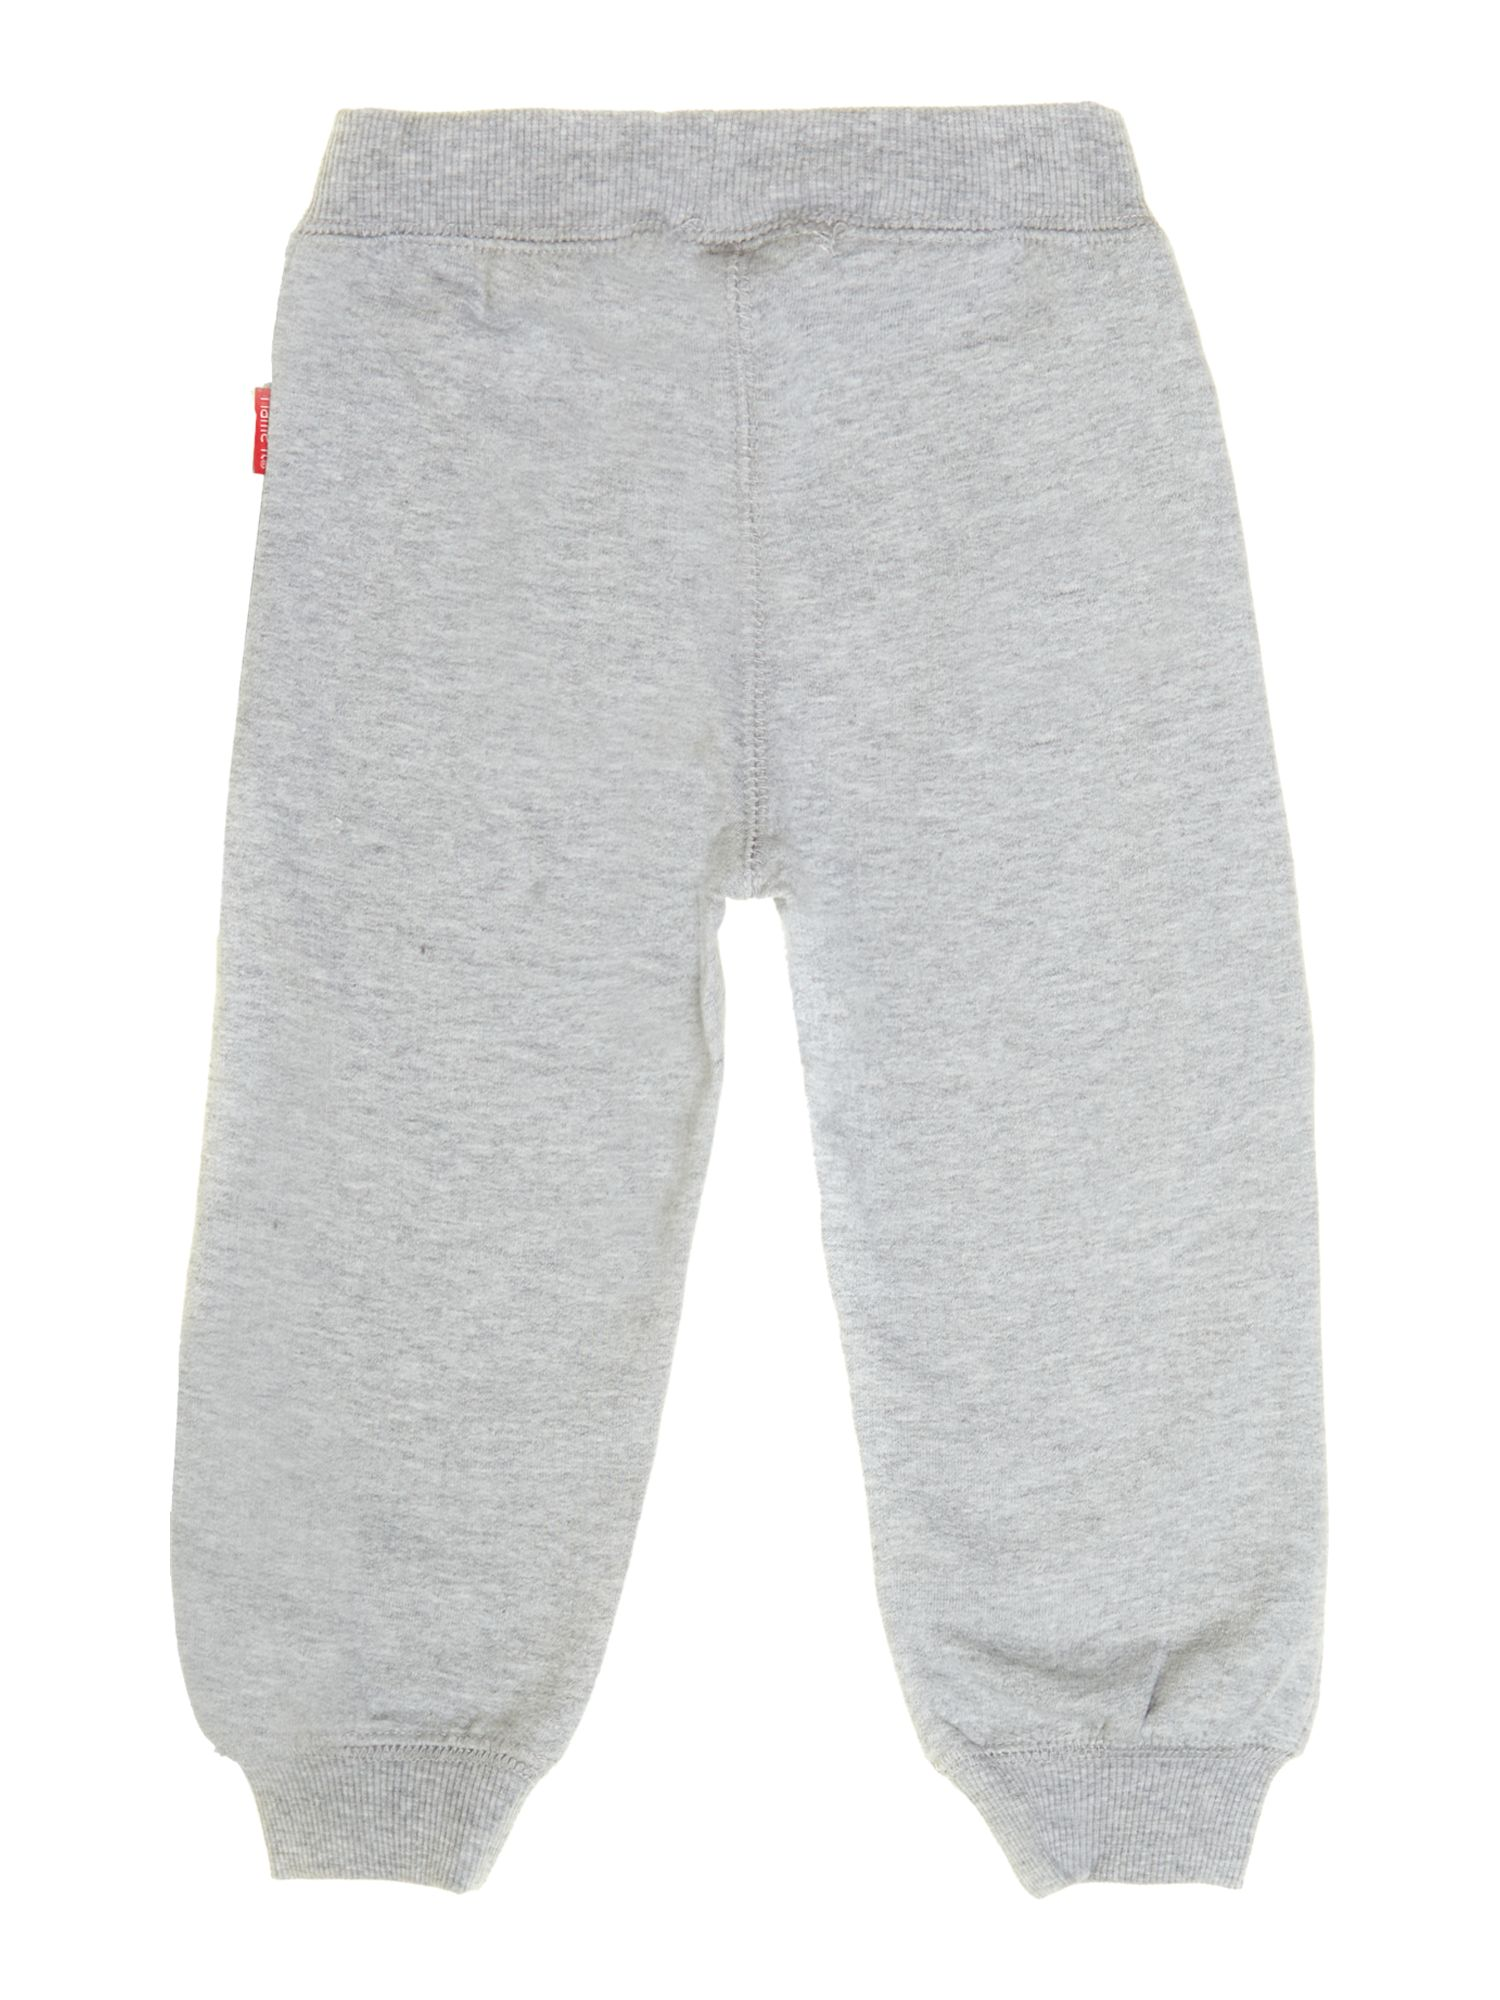 unisex tracksuit bottom with contrast drawcord